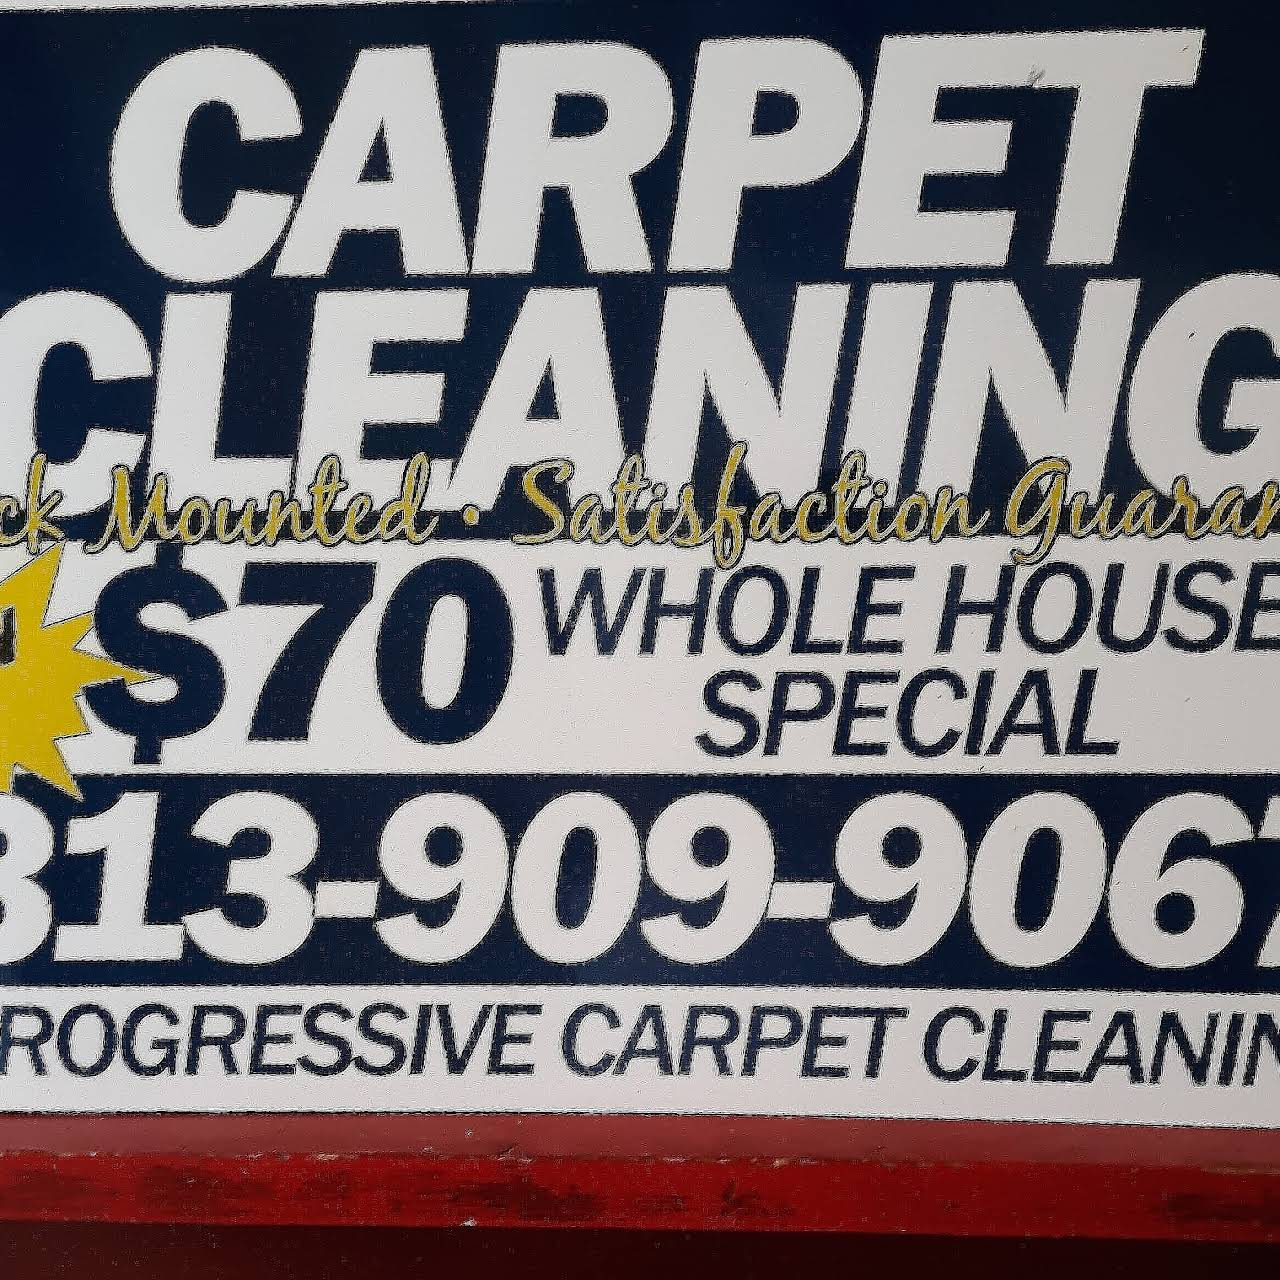 Progressive Carpet Cleaning - ($70 Whole House Special) 13